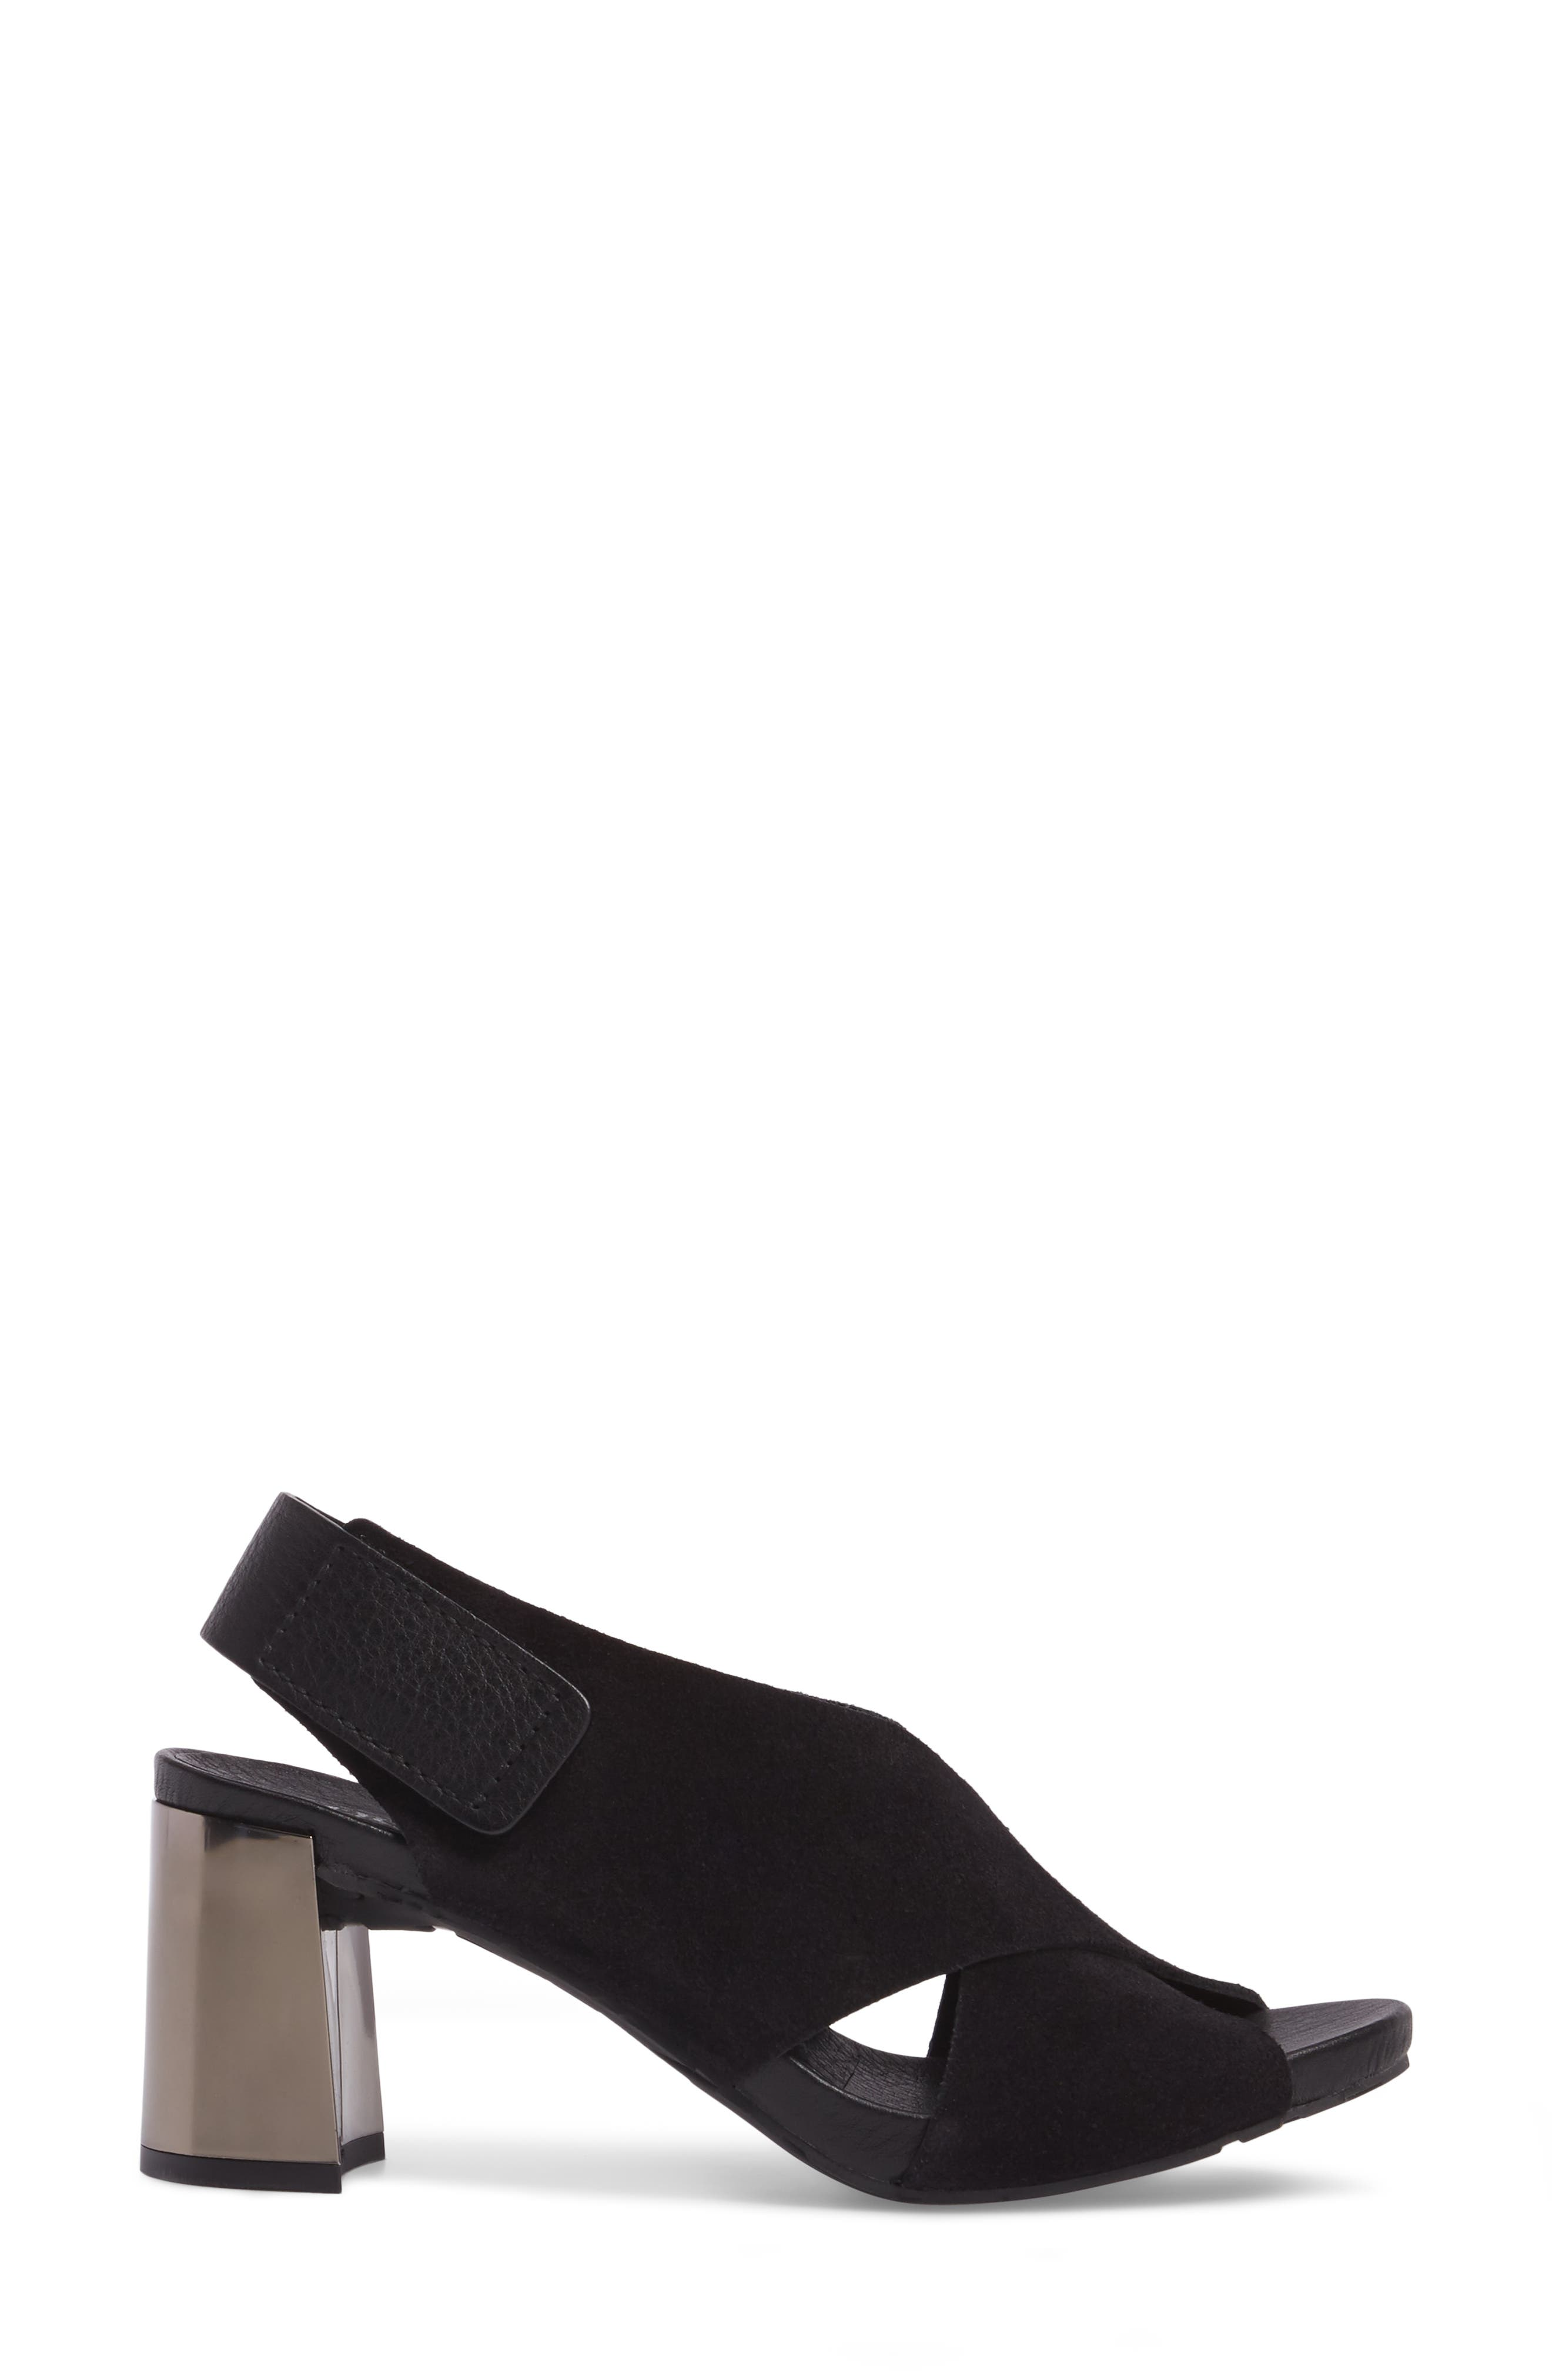 Wara Sandal,                             Alternate thumbnail 3, color,                             BLACK CASTORO